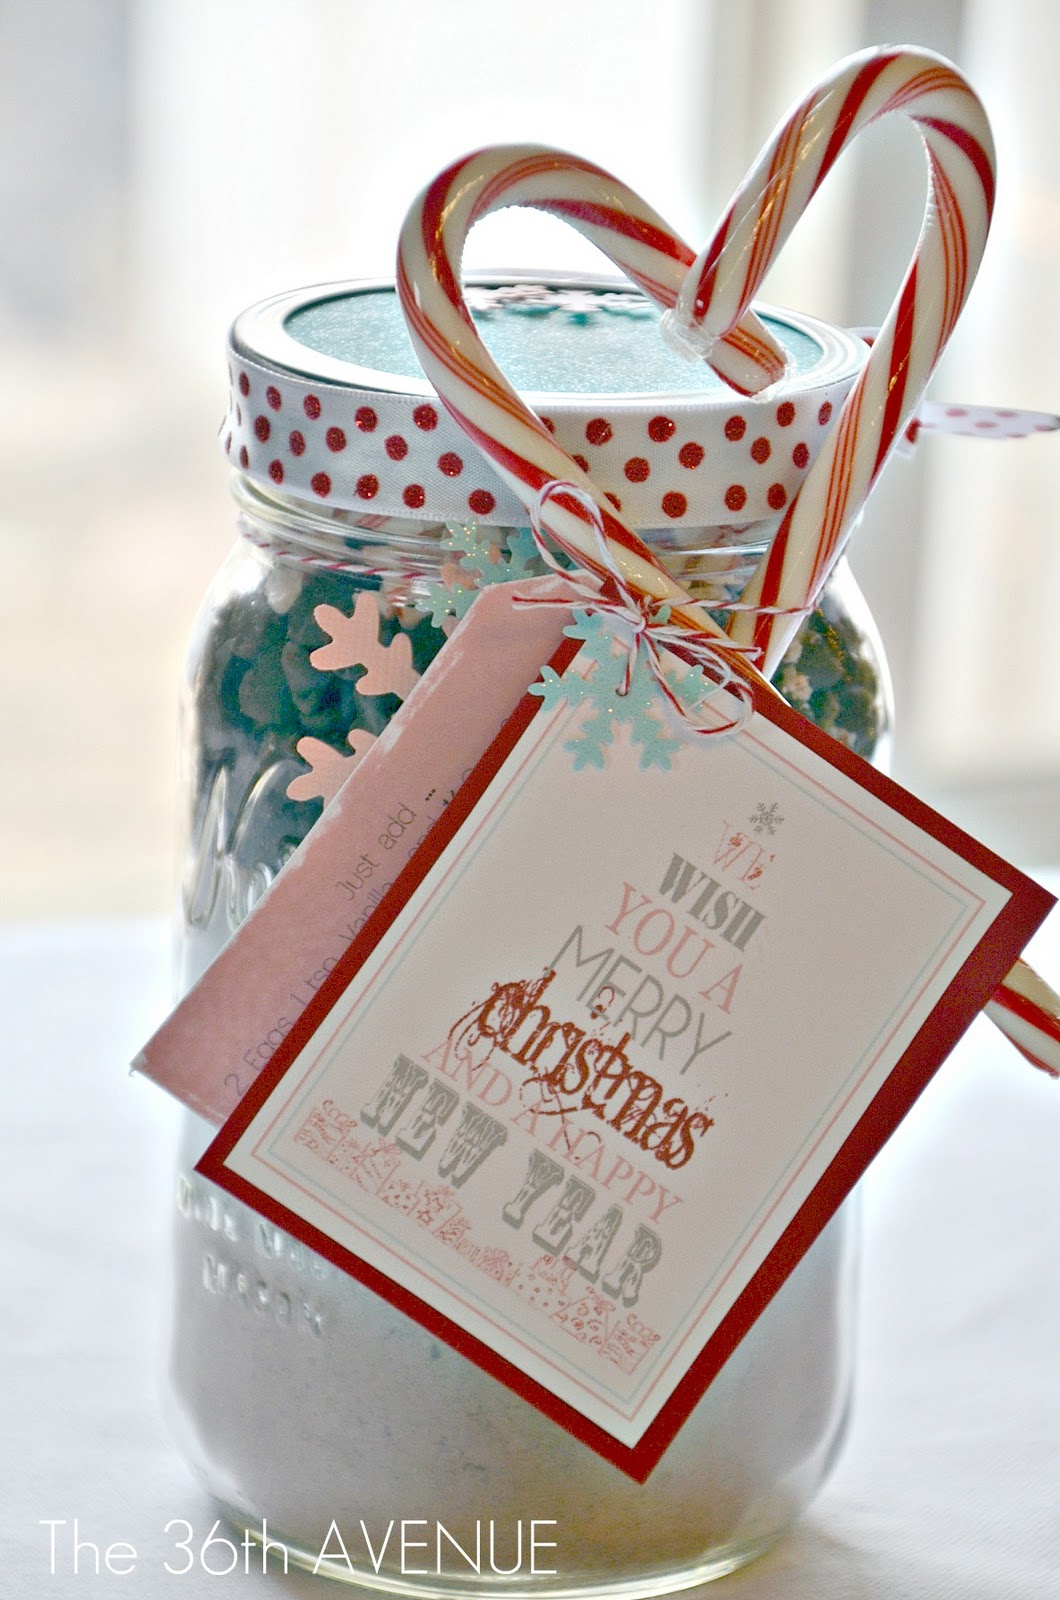 25 Edible Neighbor Gifts - The 36th AVENUE